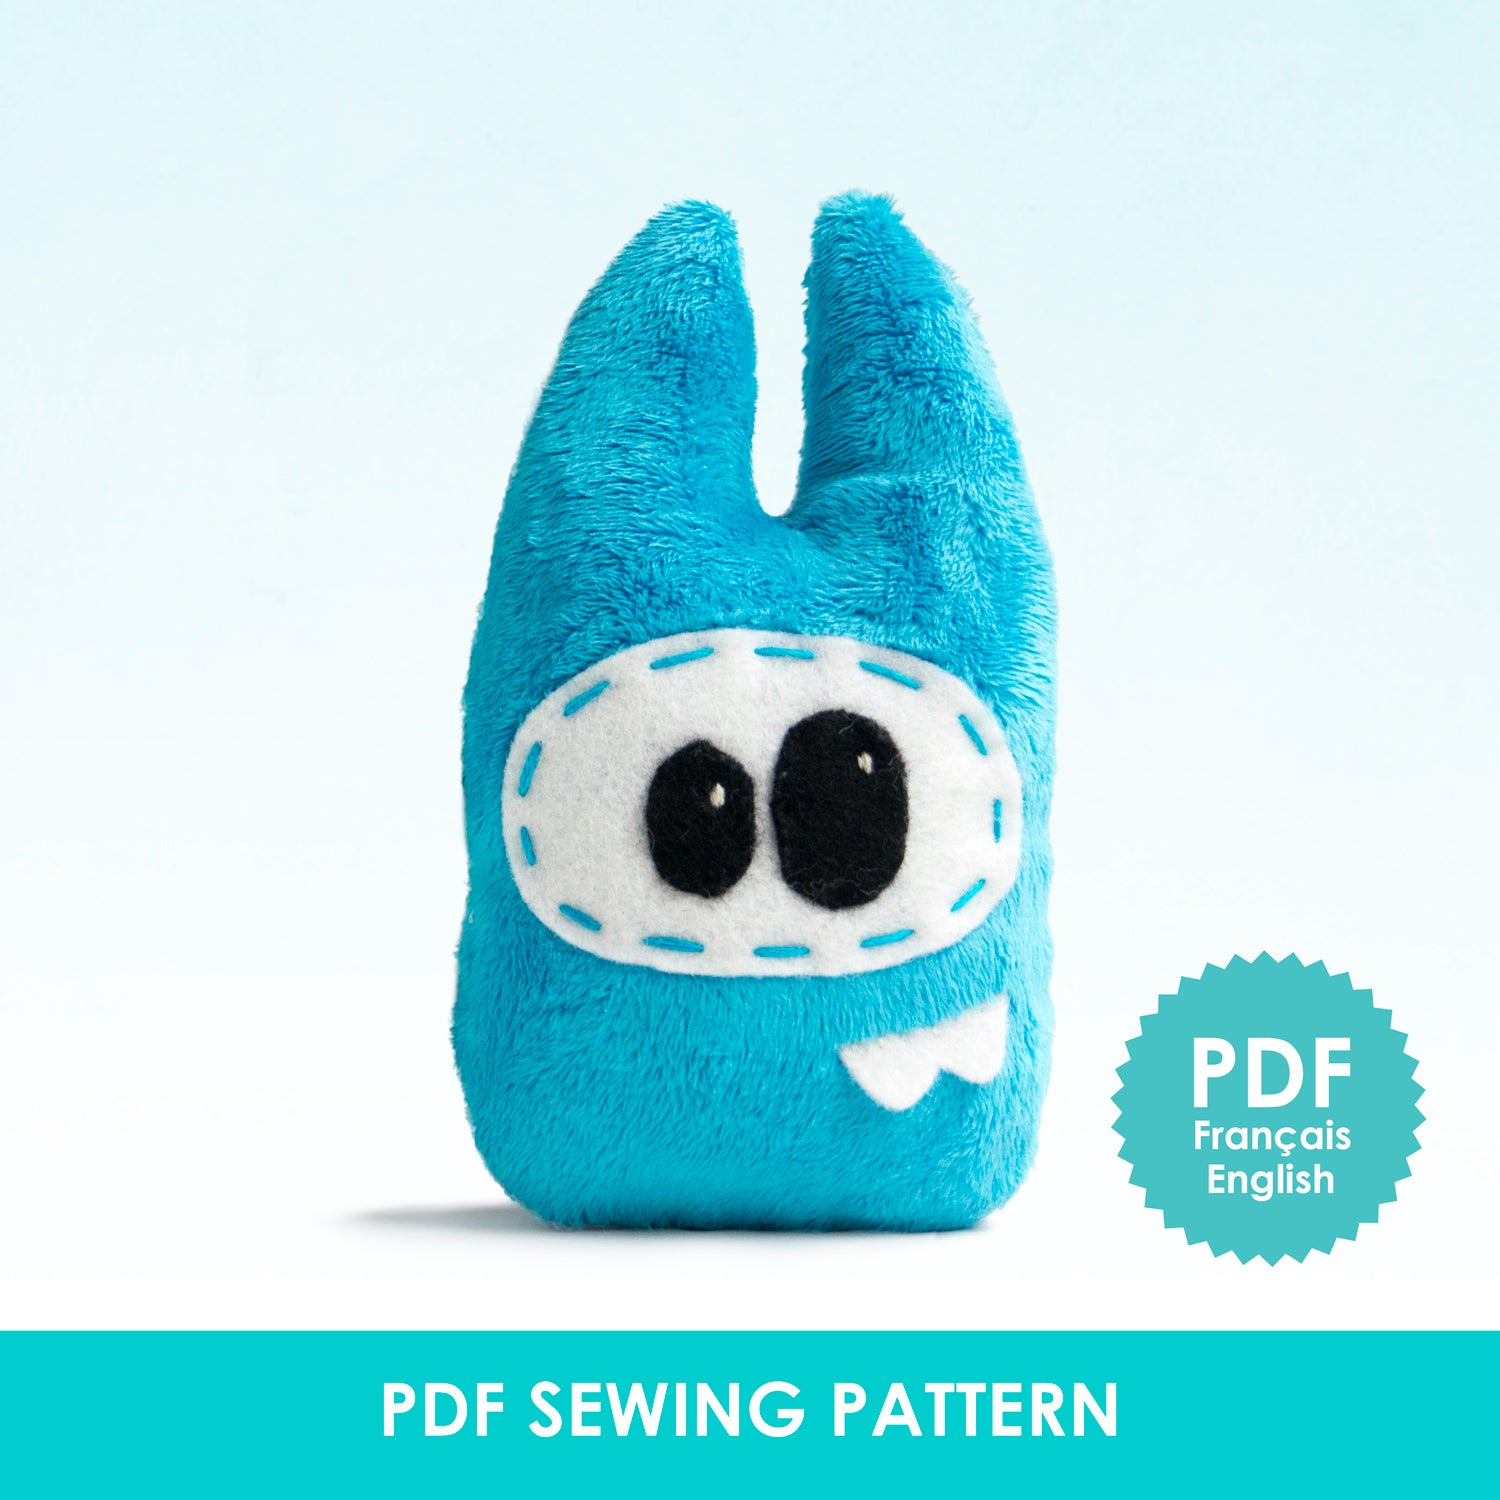 PDF Sewing Pattern - Blue monster